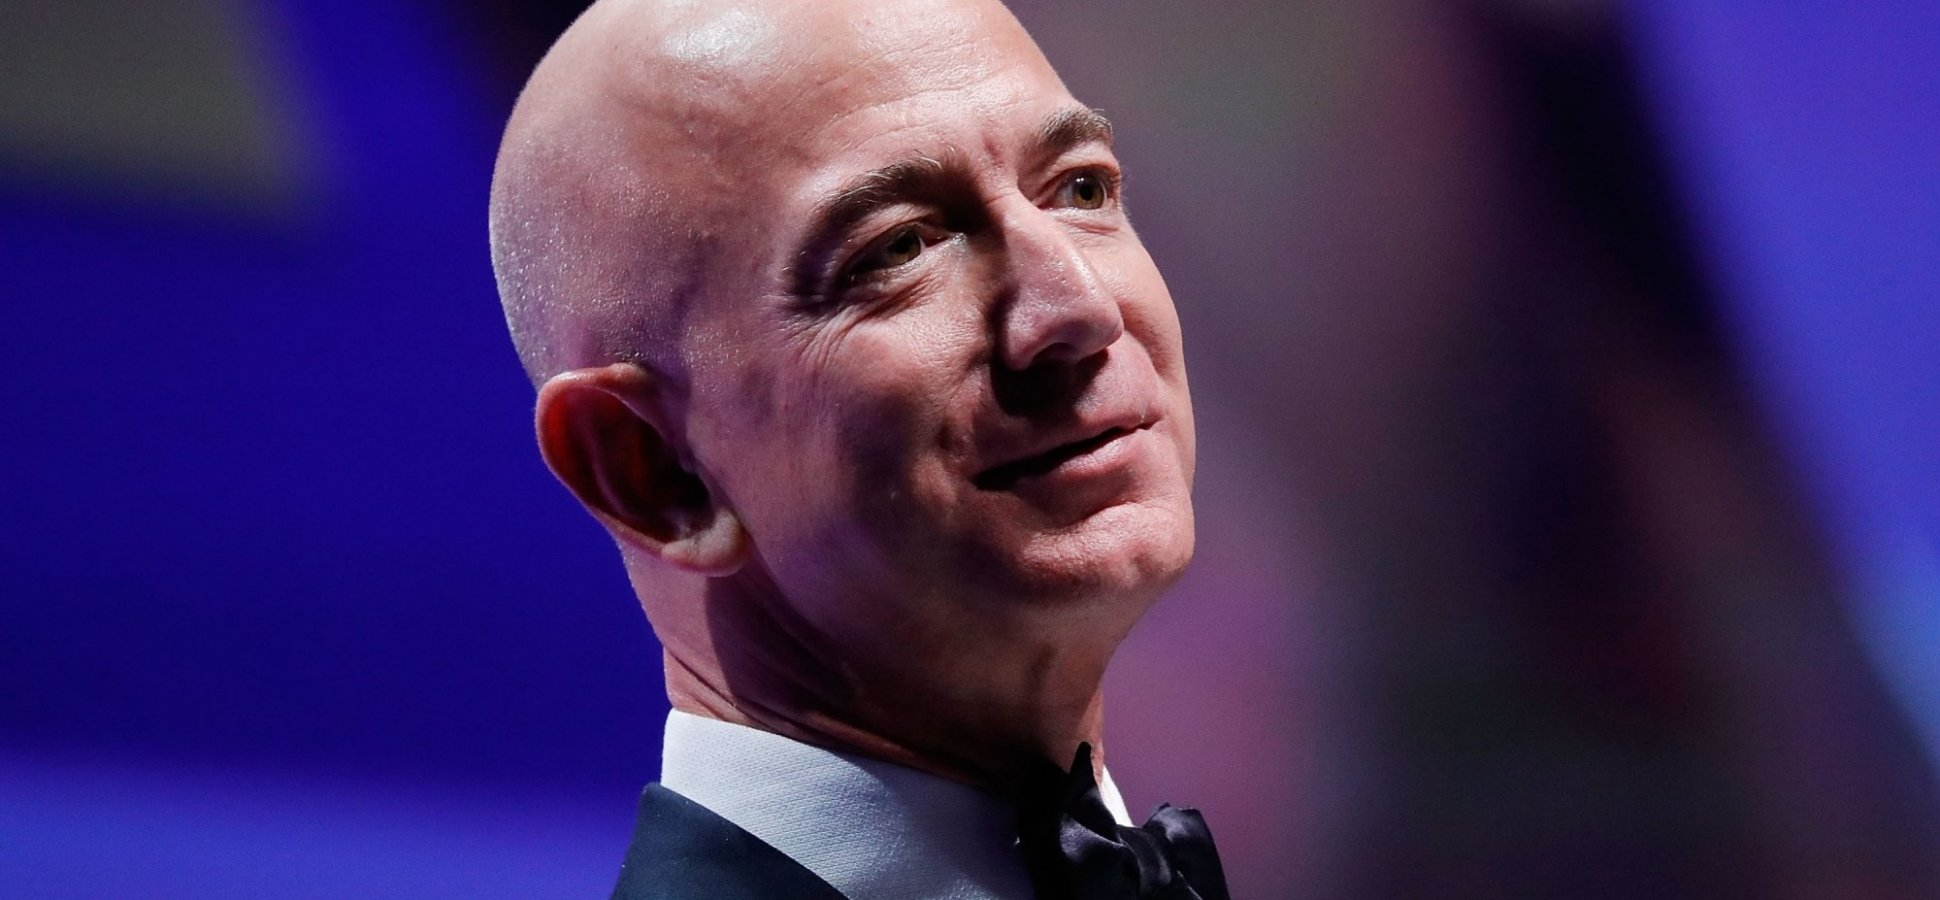 Jeff Bezos Net Worth Is Now $105 Billion, but He Has 2 Traits That Are Worth Even More